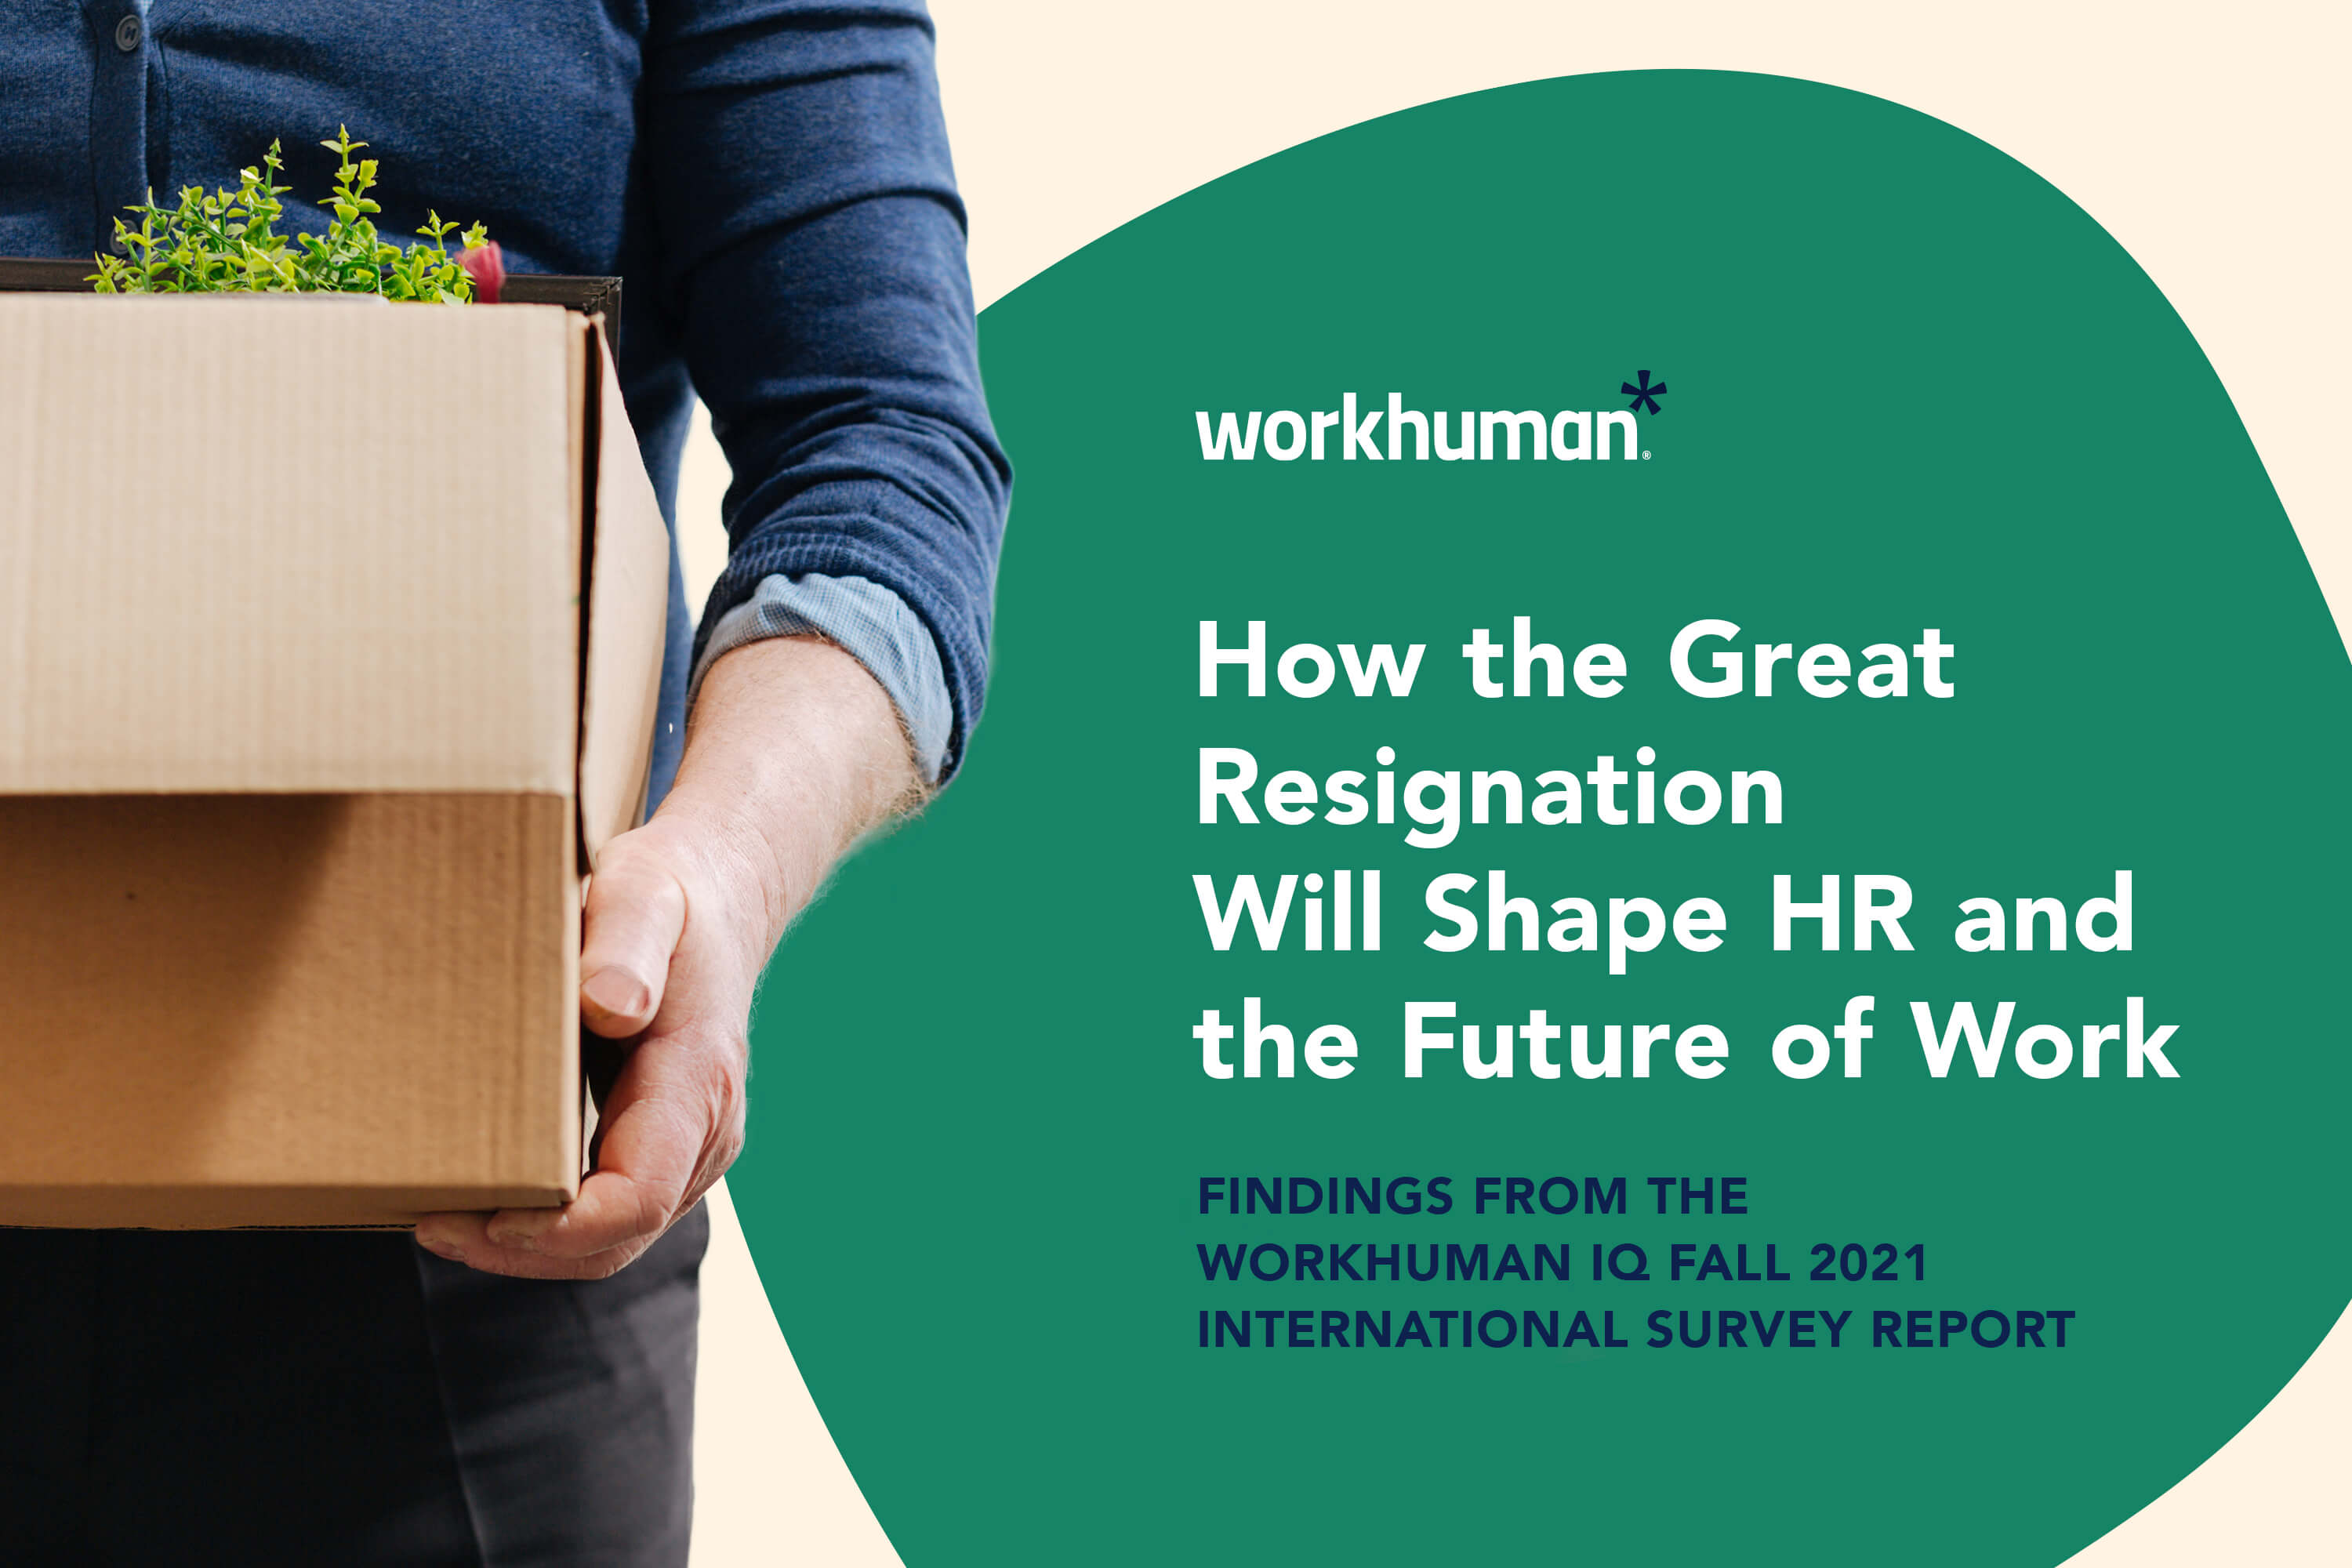 how the great resignation will shape the future of work